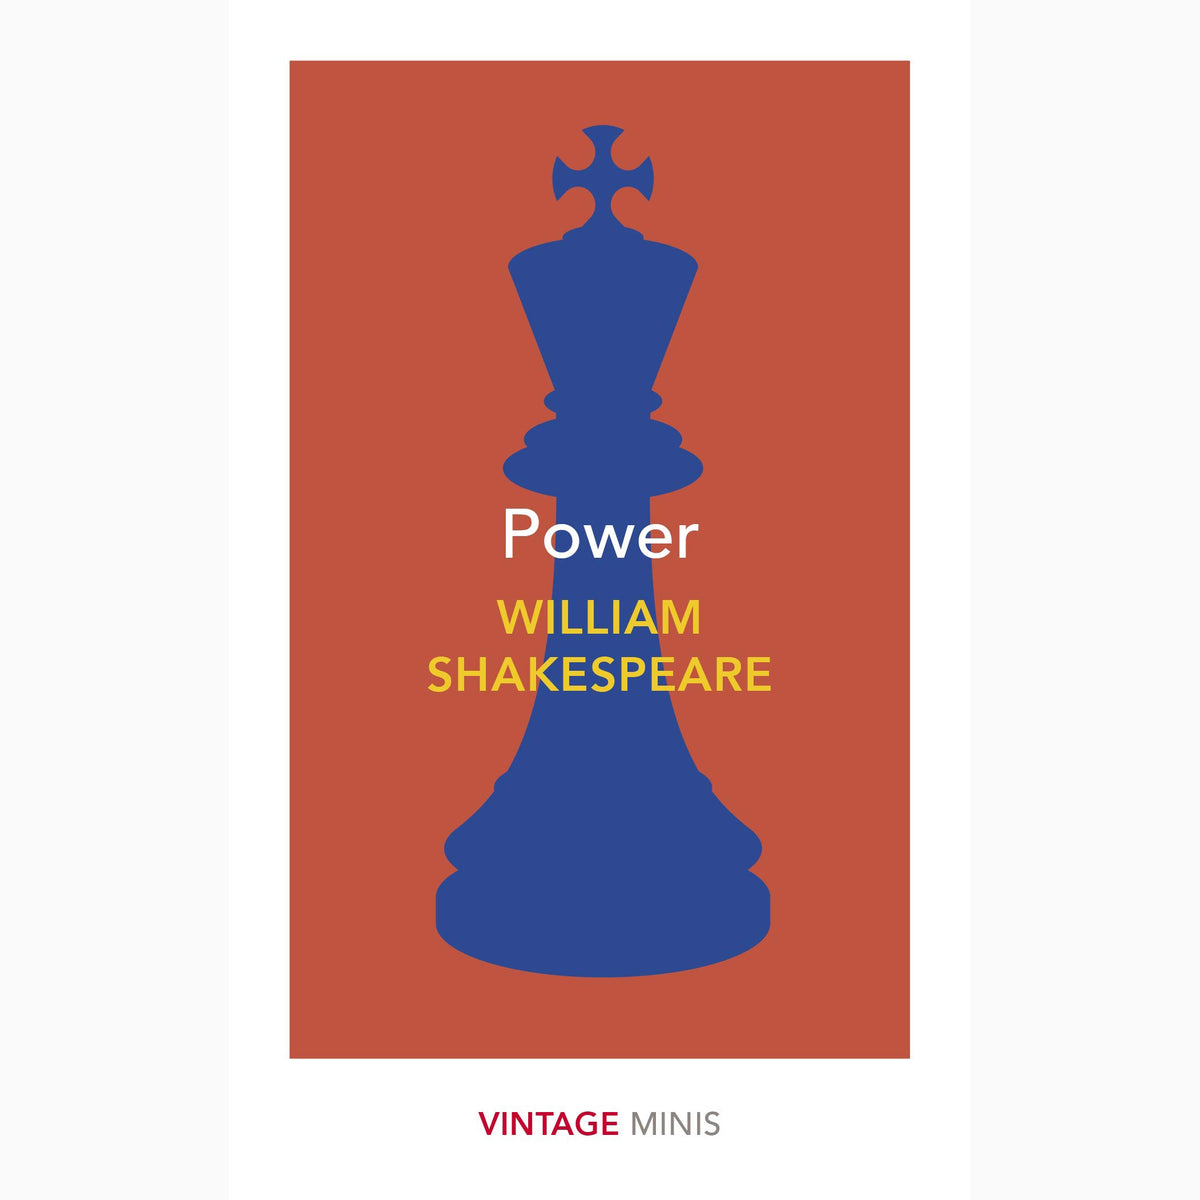 Cover of Power collection of William Shakespeare